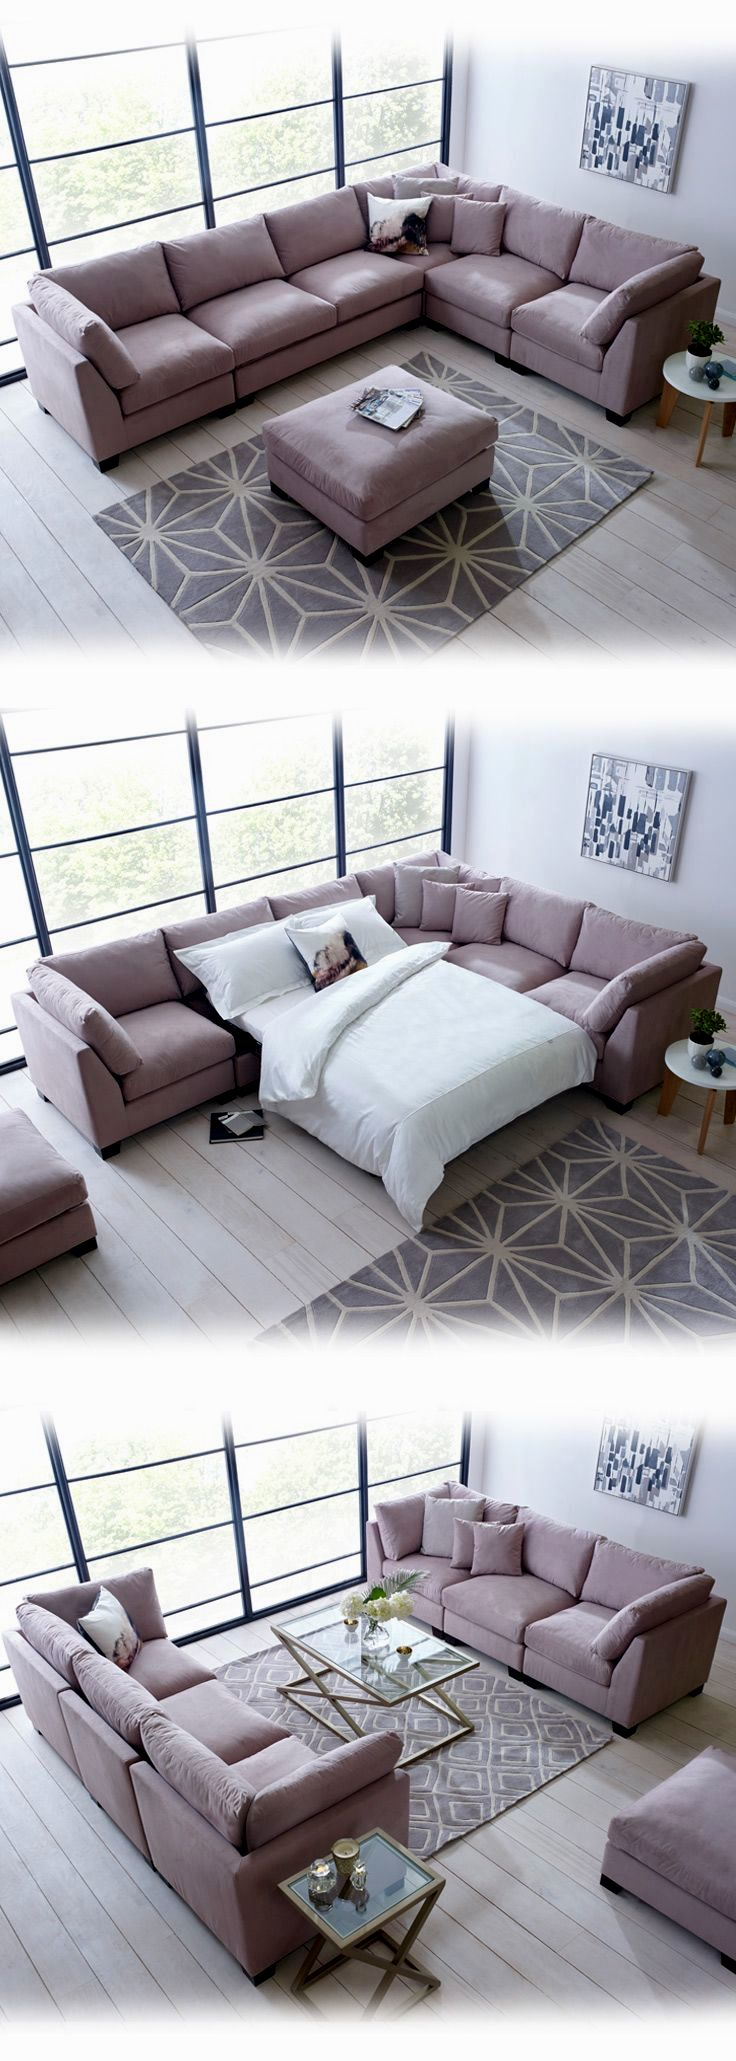 latest sofa cushion foam ideas-Fresh sofa Cushion Foam Architecture